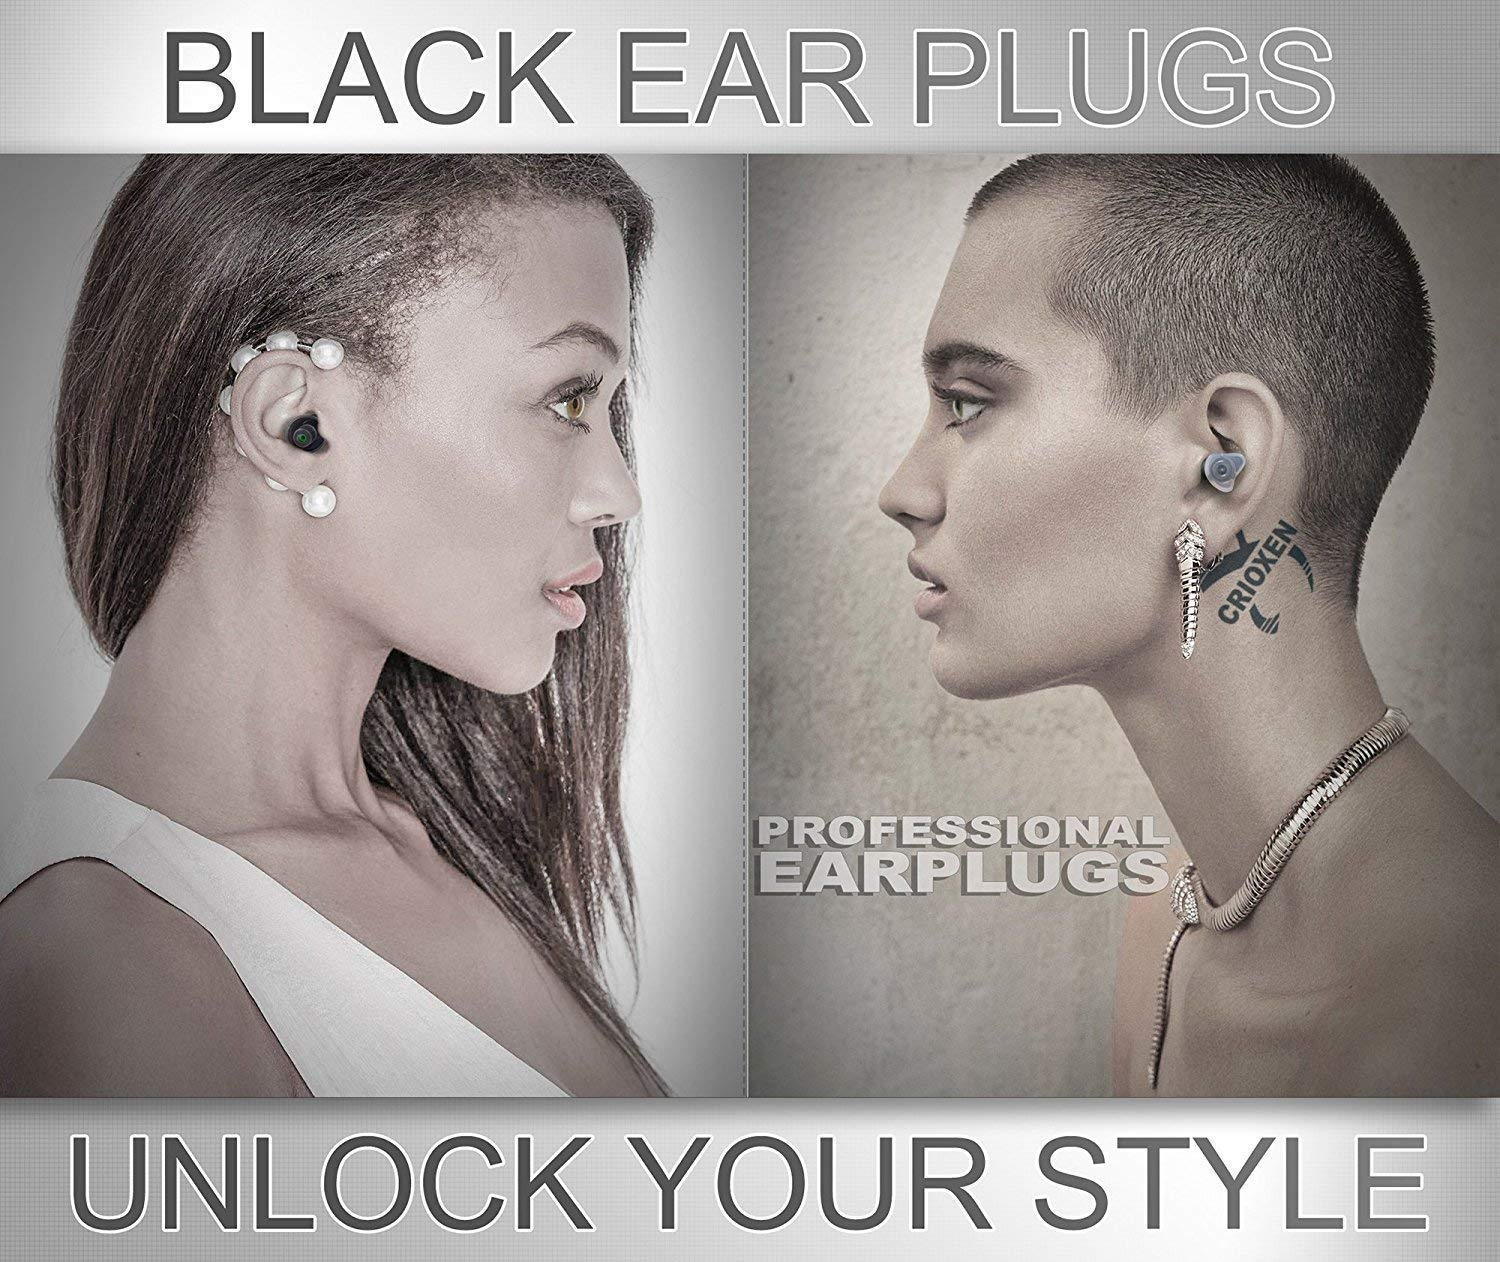 Noise Cancelling Ear Plugs for Sleeping - High Fidelity Silicone Earplugs Musicians' by CRIOXEN (Image #4)